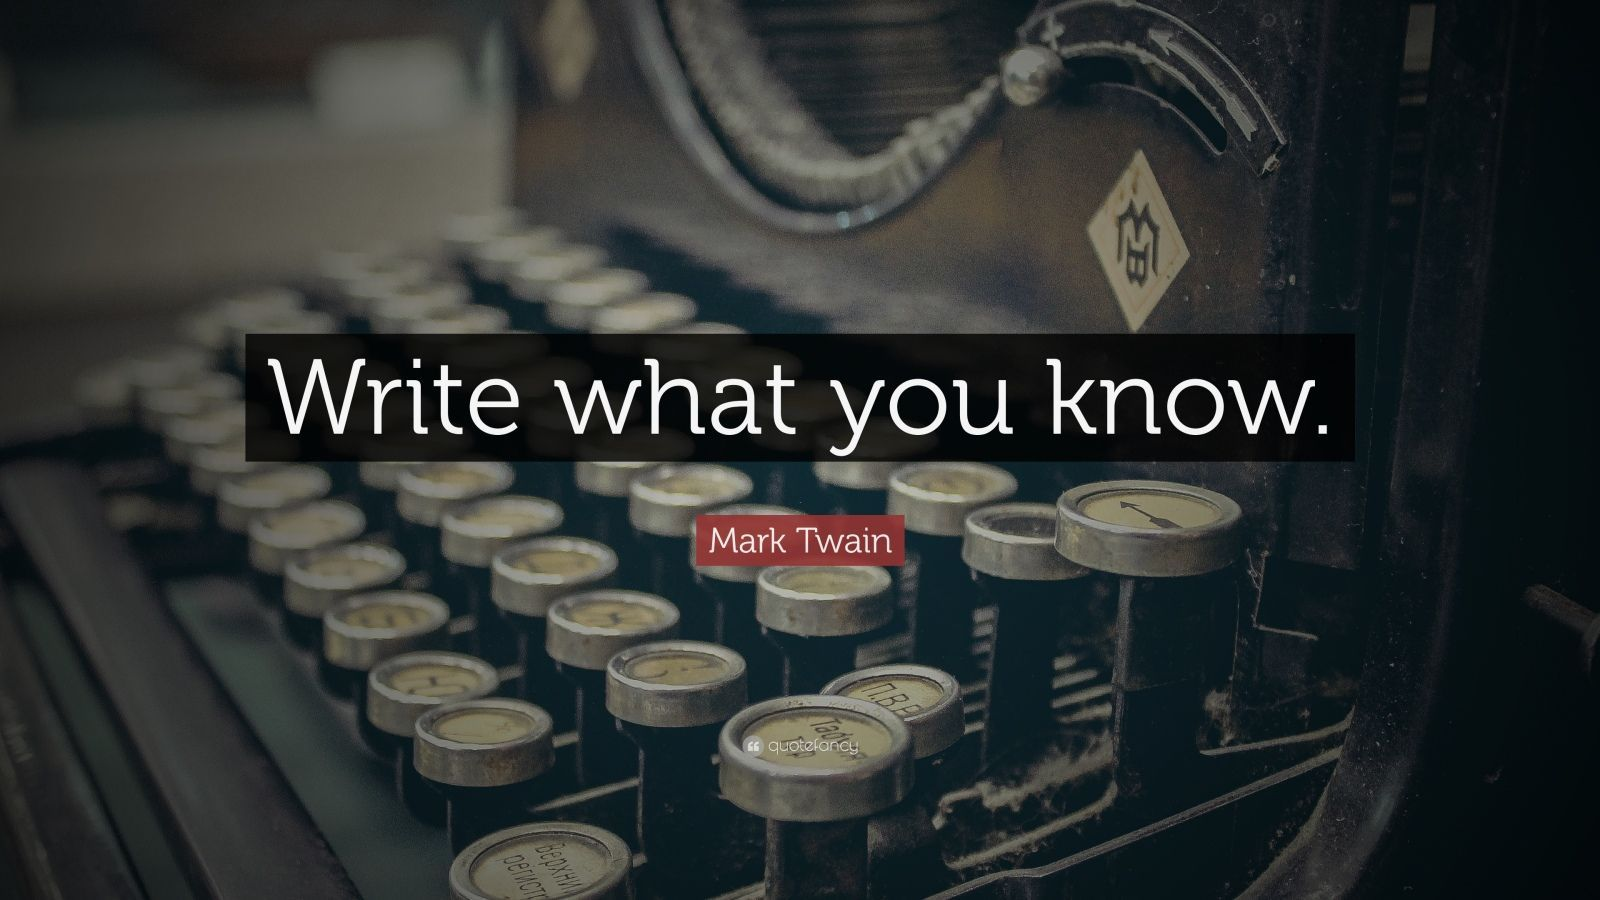 Mark Twain Quotes 100 Wallpapers